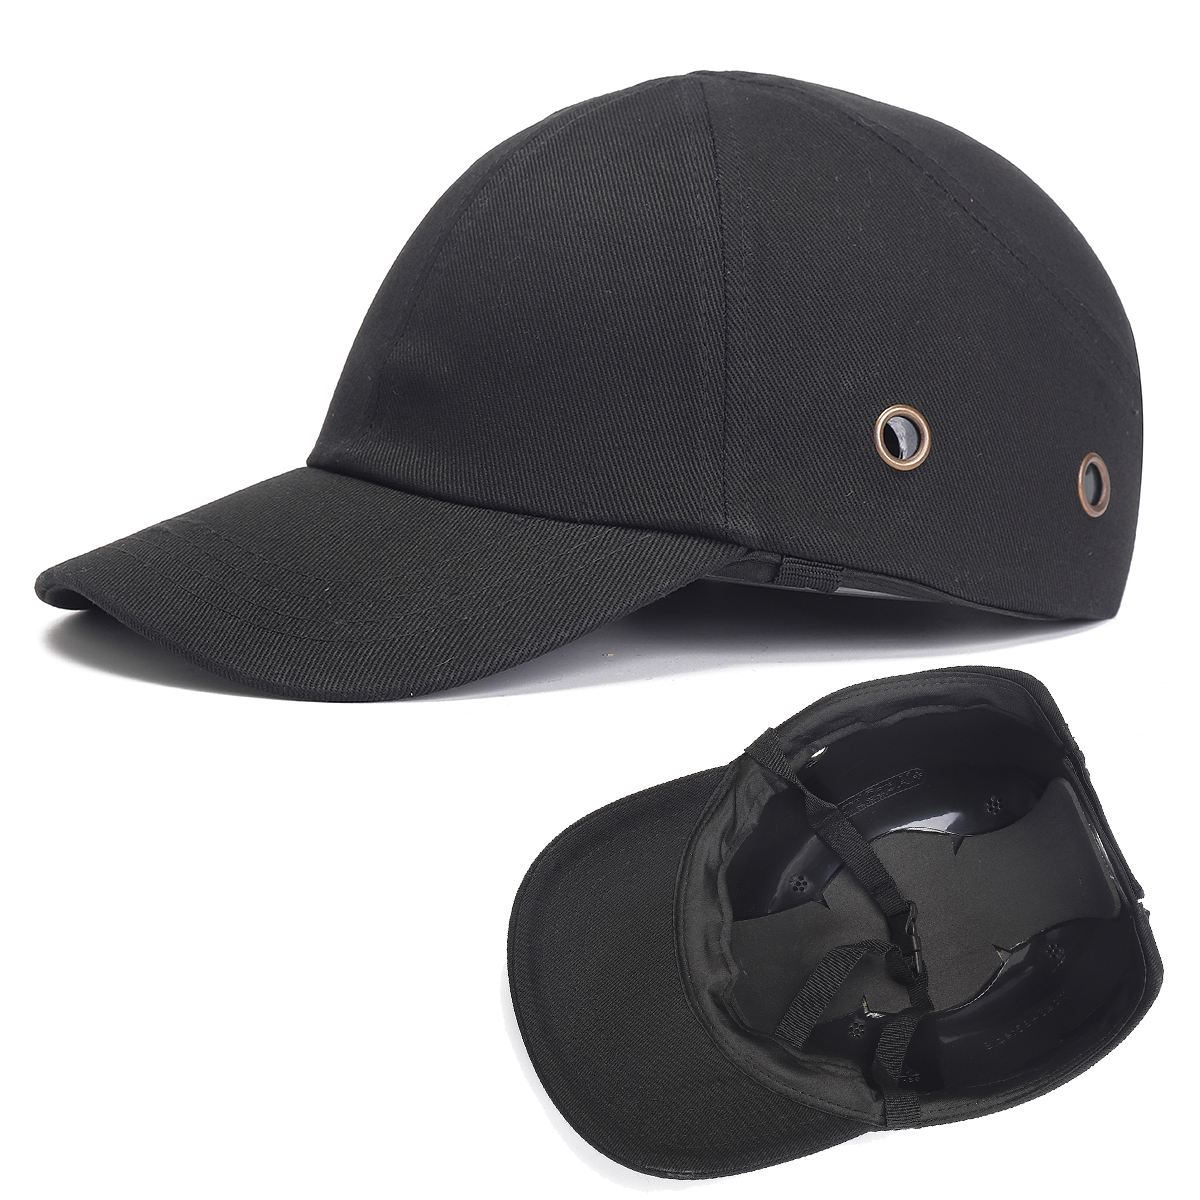 Lesov Bump   Cap   Work Safety Hat Lightweight Breathable Security Anti-impact   Baseball     Cap   Casual Sunscreen Protective Sun Hats NEW